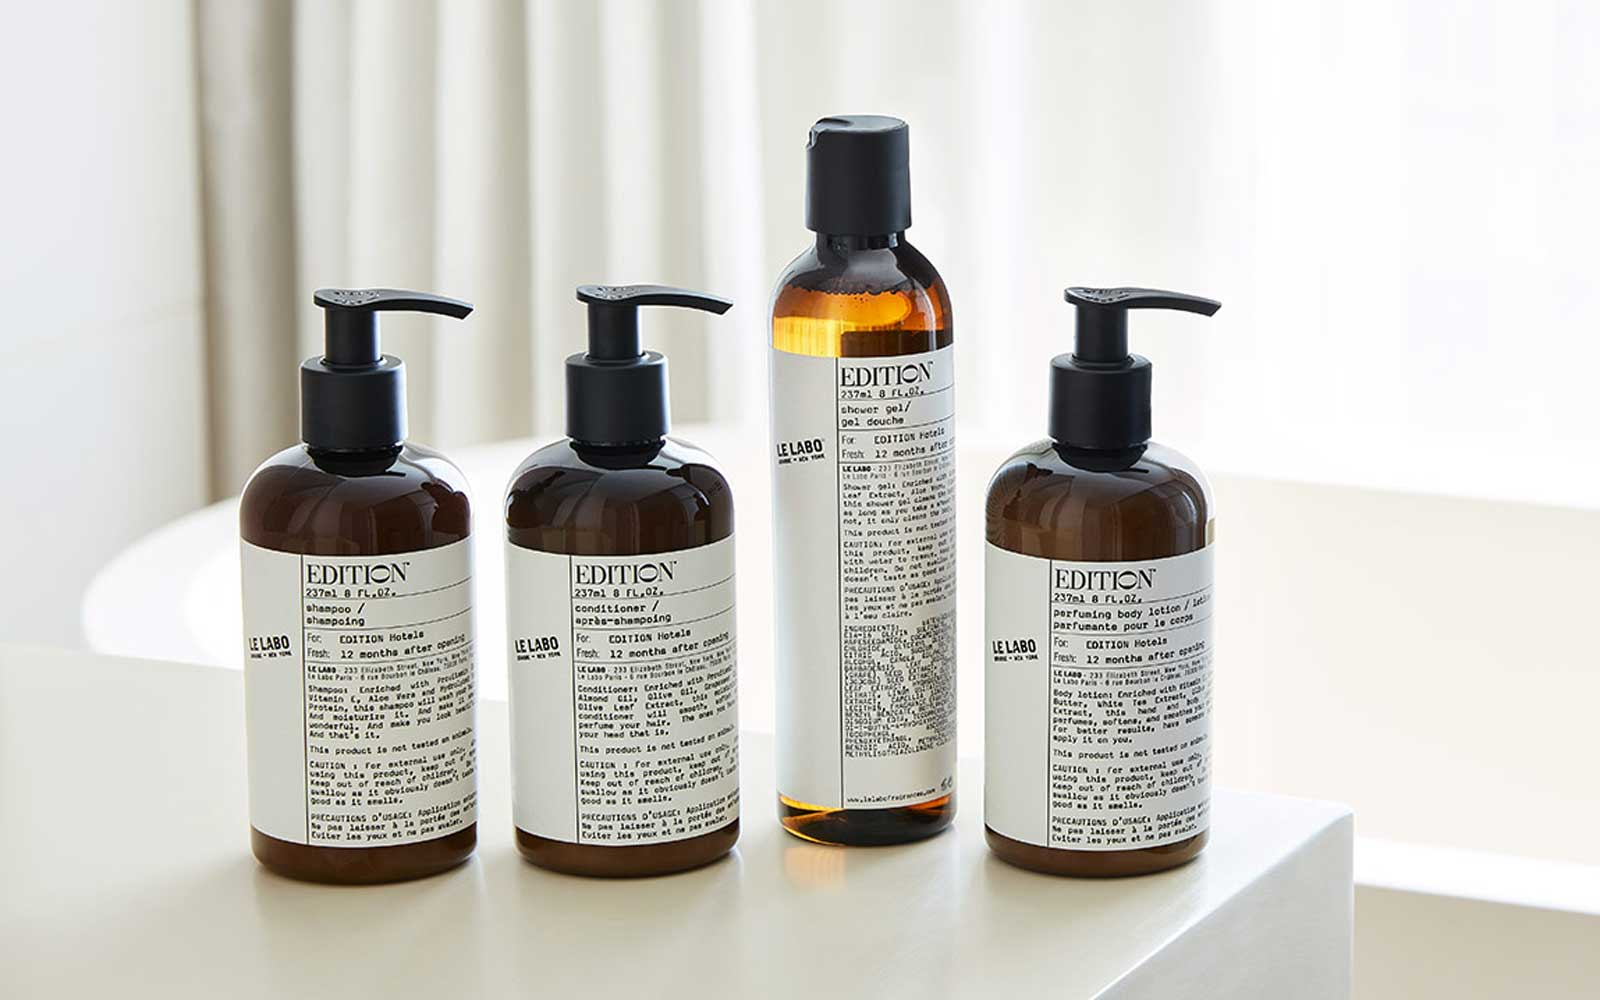 Le Labo Bath & Body Set including shampoo, conditioner, shower gel, and body lotion bottles